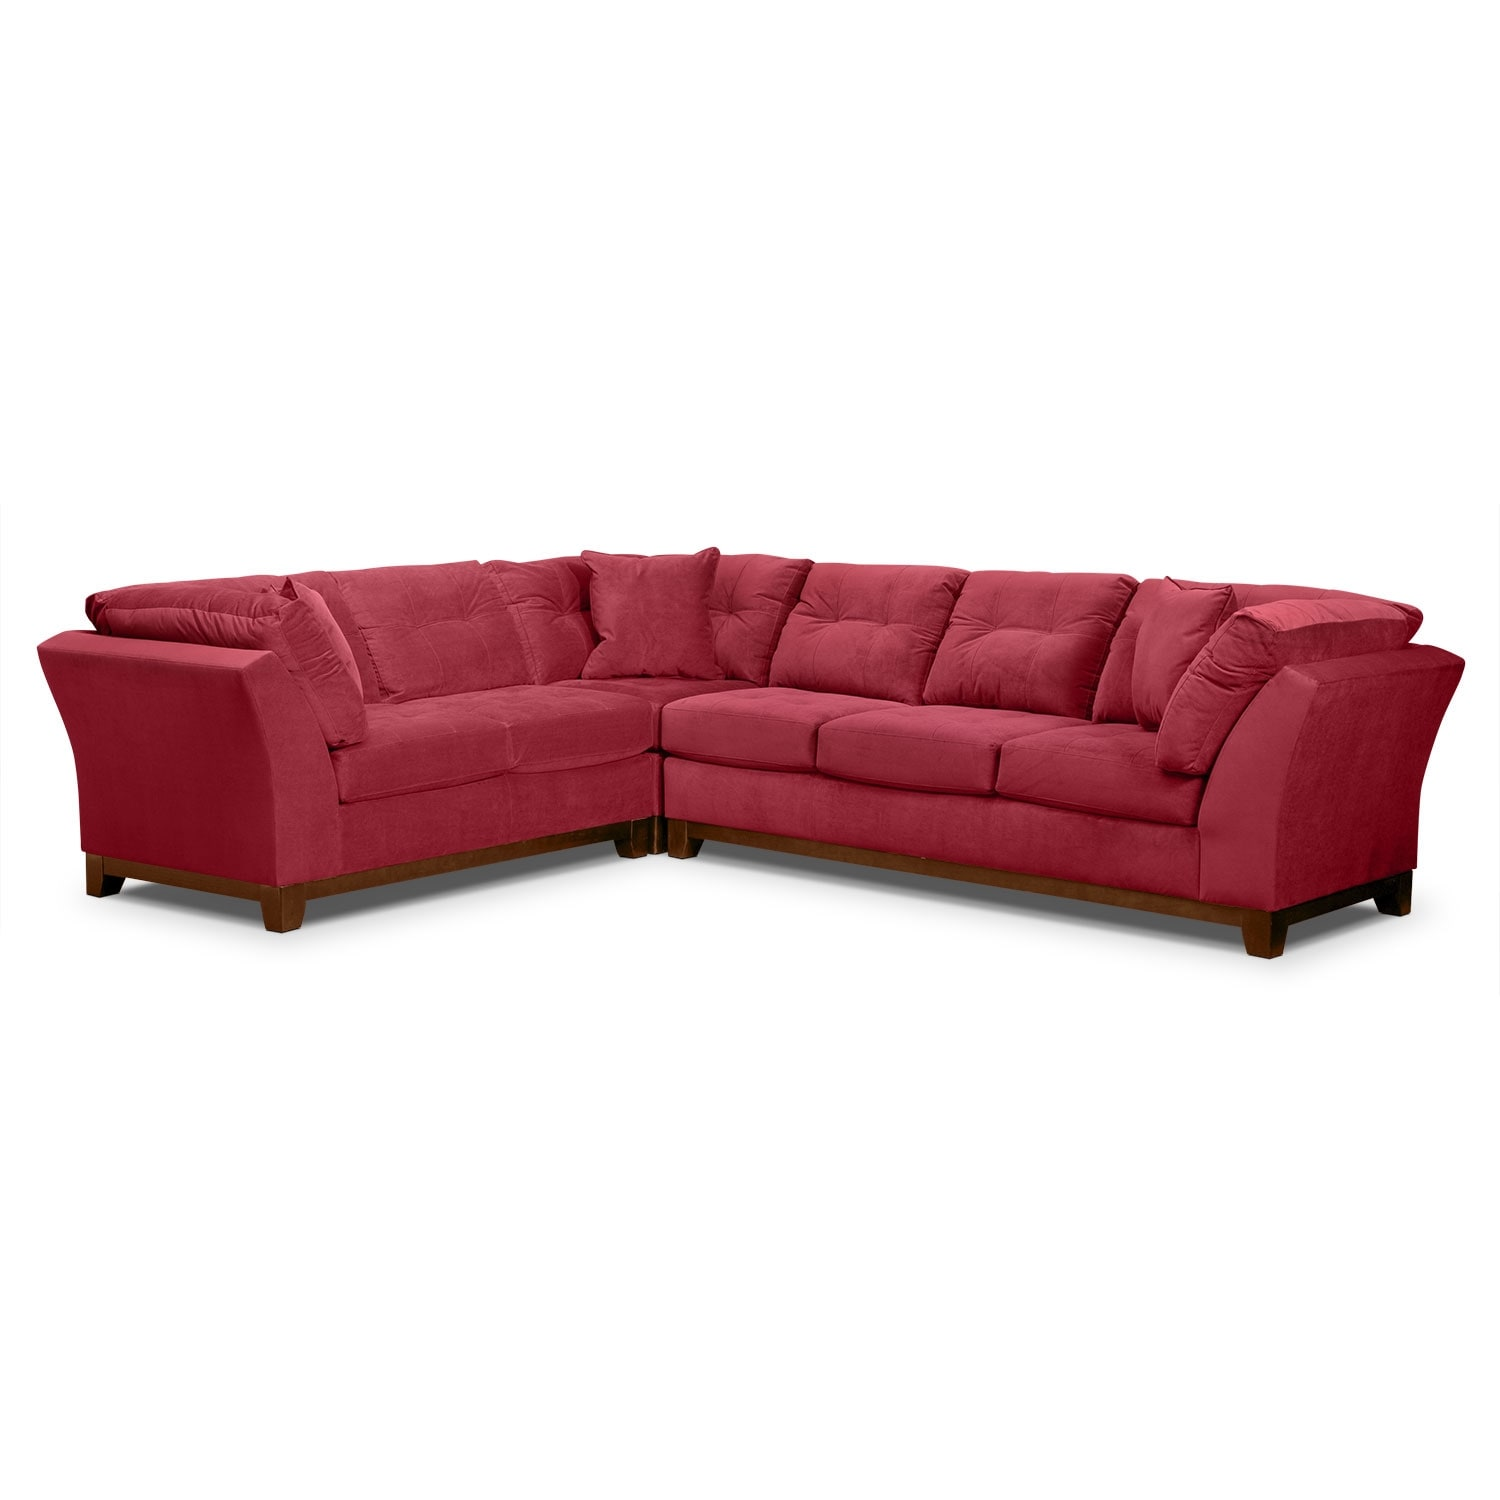 Solace 3-Piece Right-Facing Sofa Sectional - Poppy